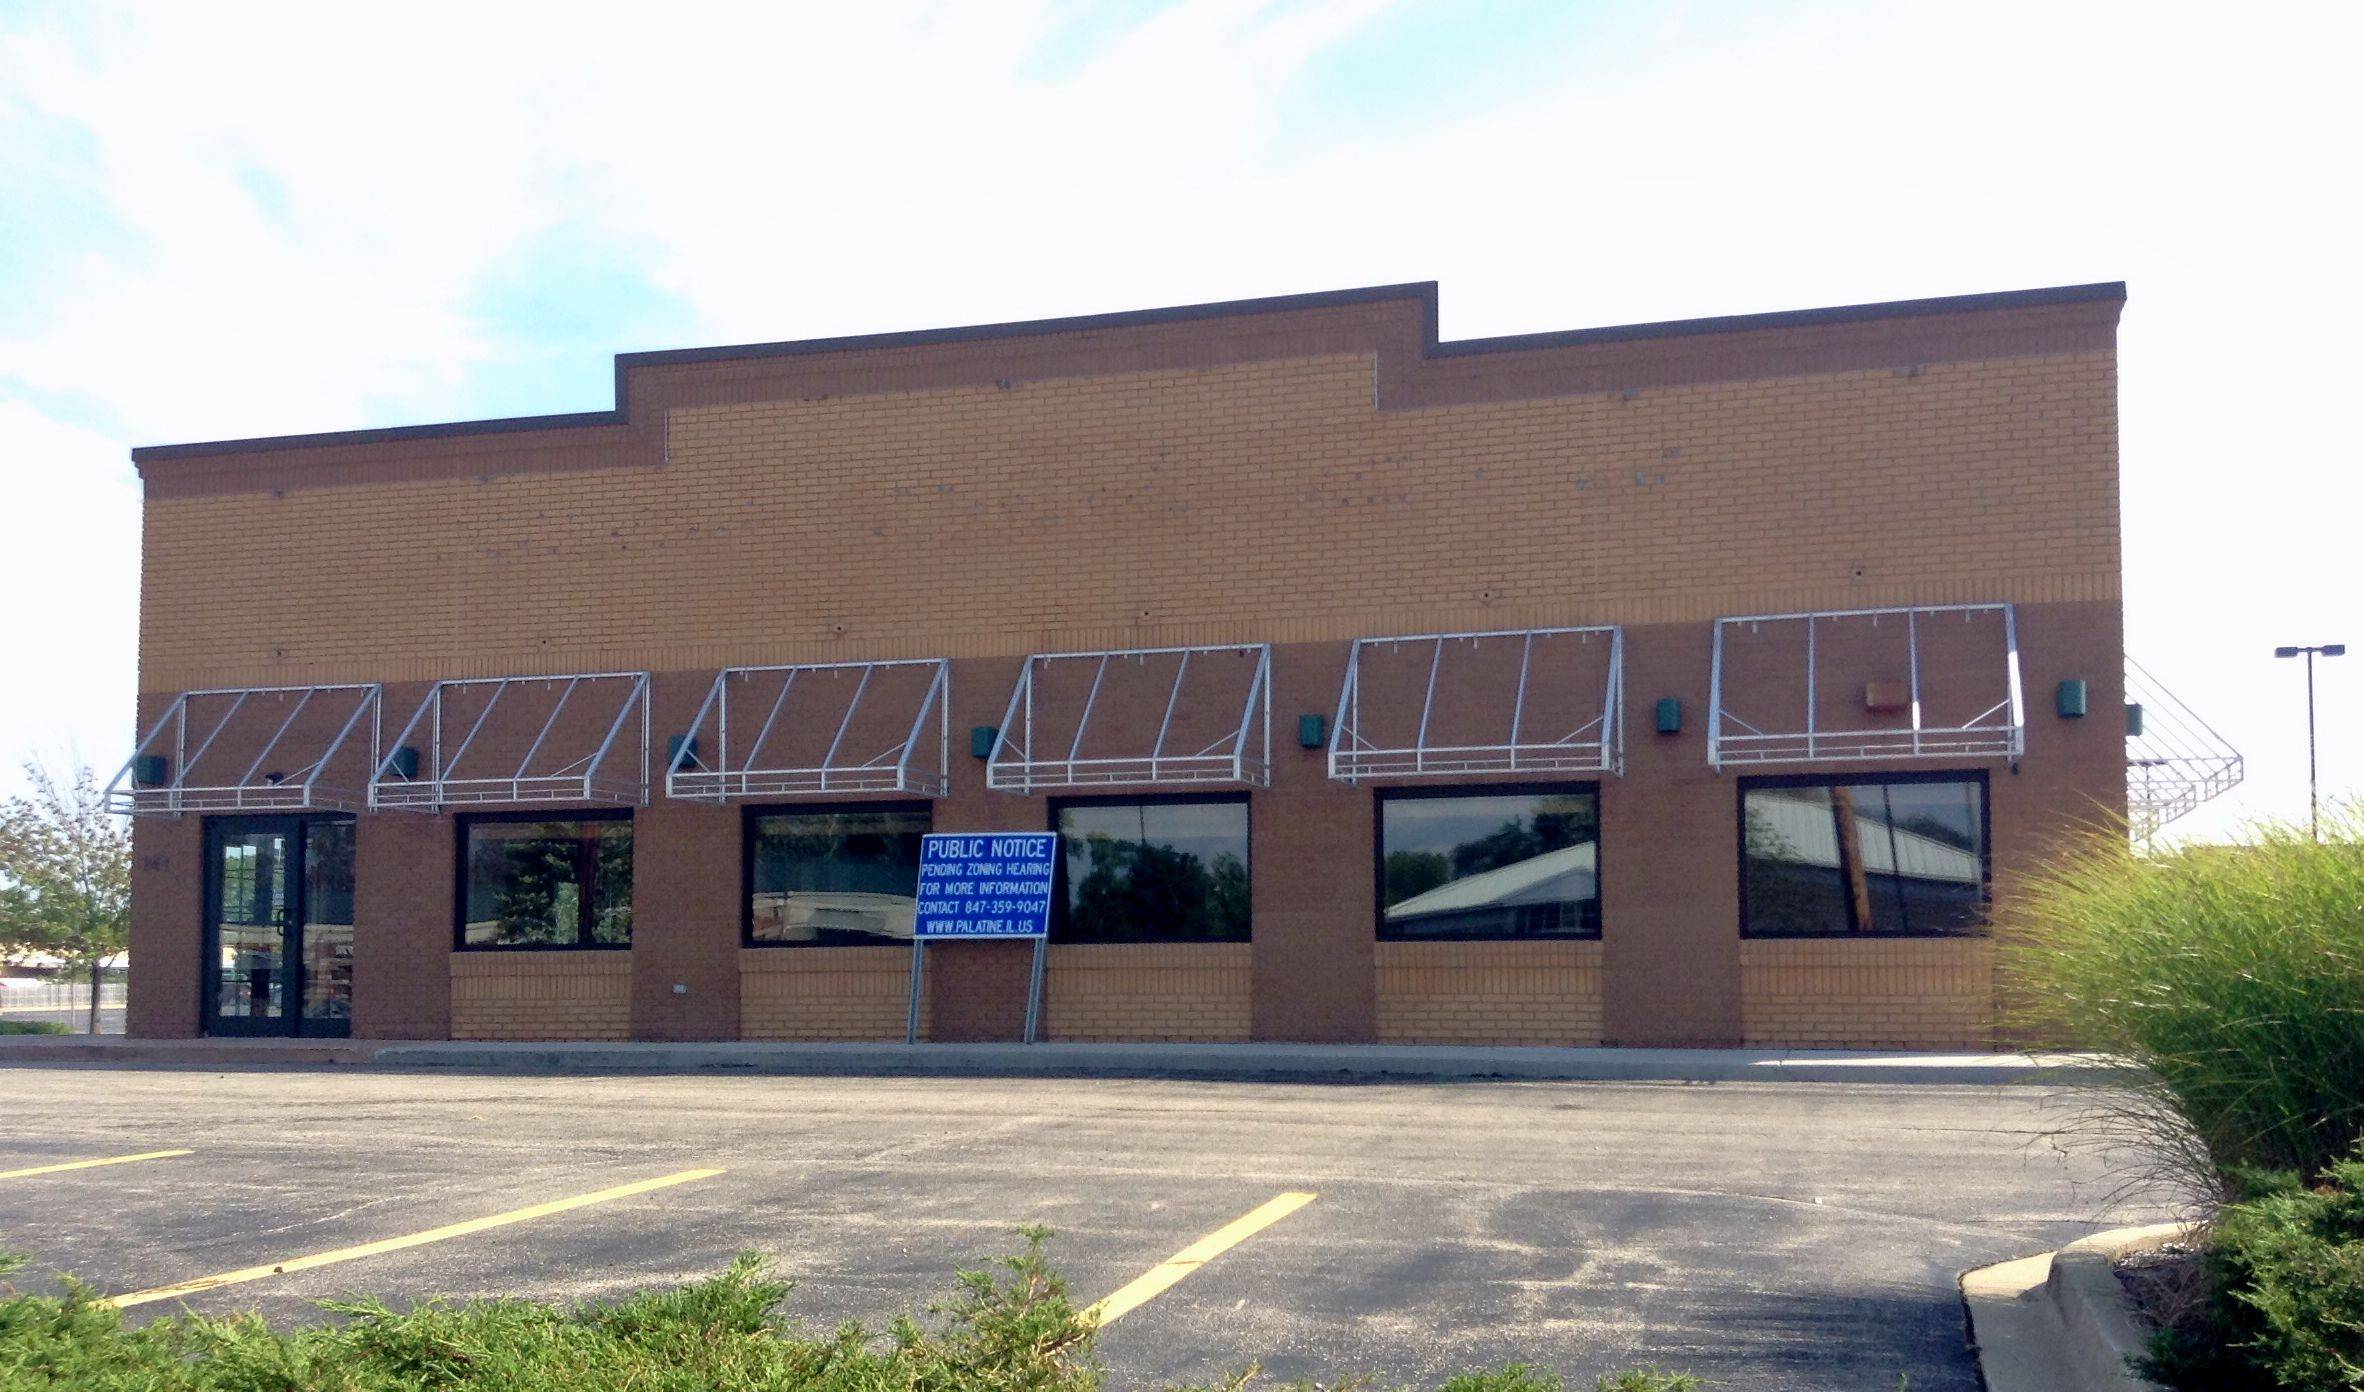 The former Applebee's restaurant at 781 E. Dundee Road in Palatine will be demolished to make way for a new building that will house a Chipotle Mexican Grill, a Jersey Mike's Subs, a Starbucks with a drive-through lane and other businesses.